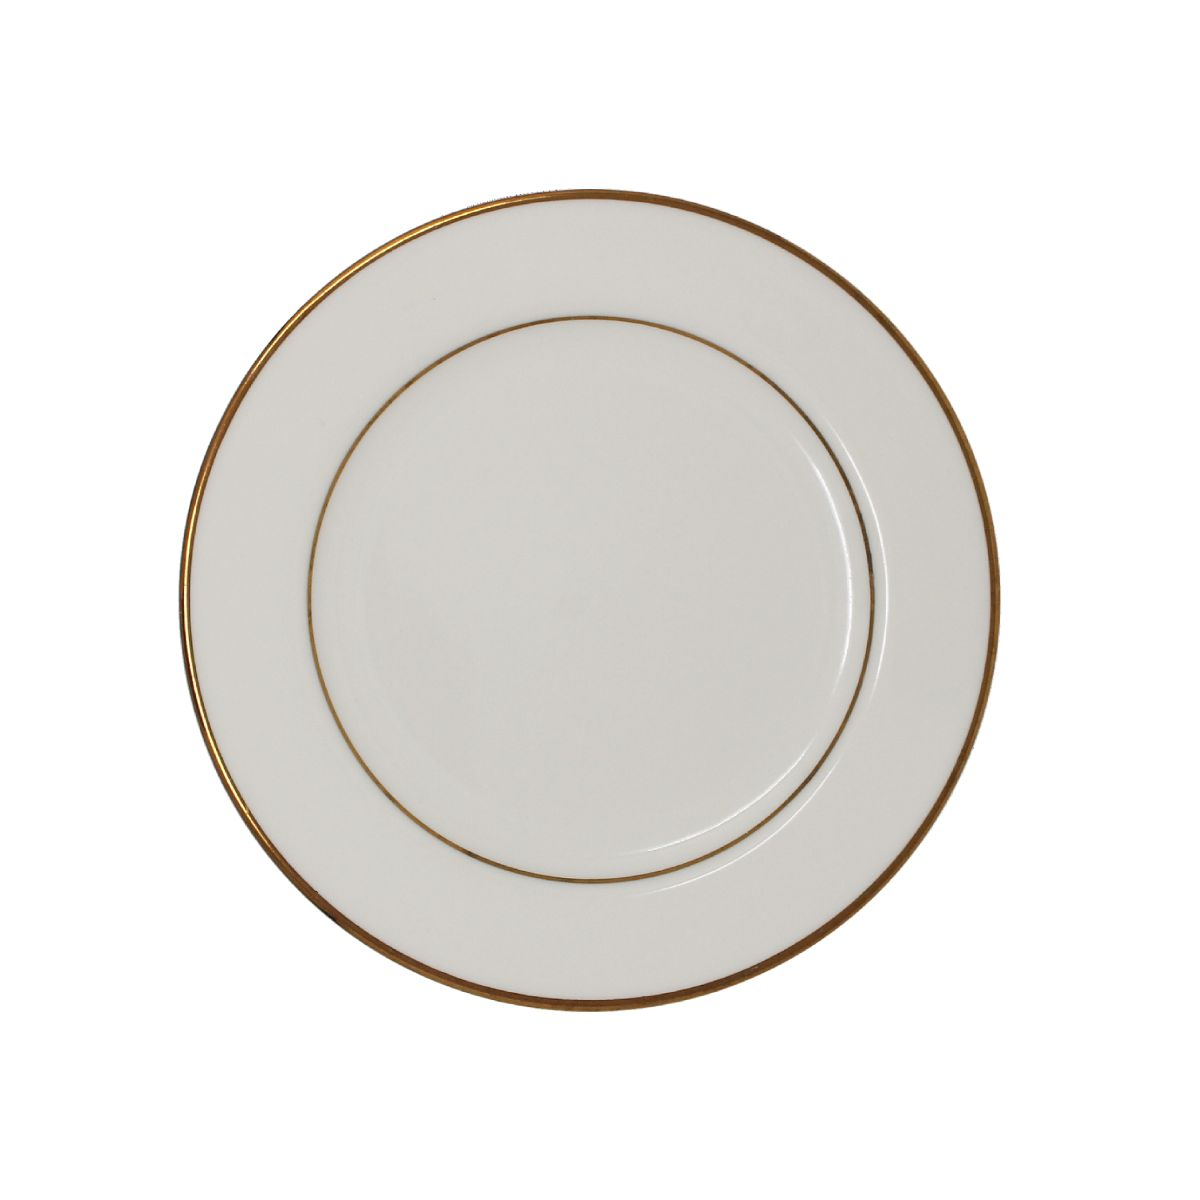 Salad Dessert Plate Beige With Gold Band 7""